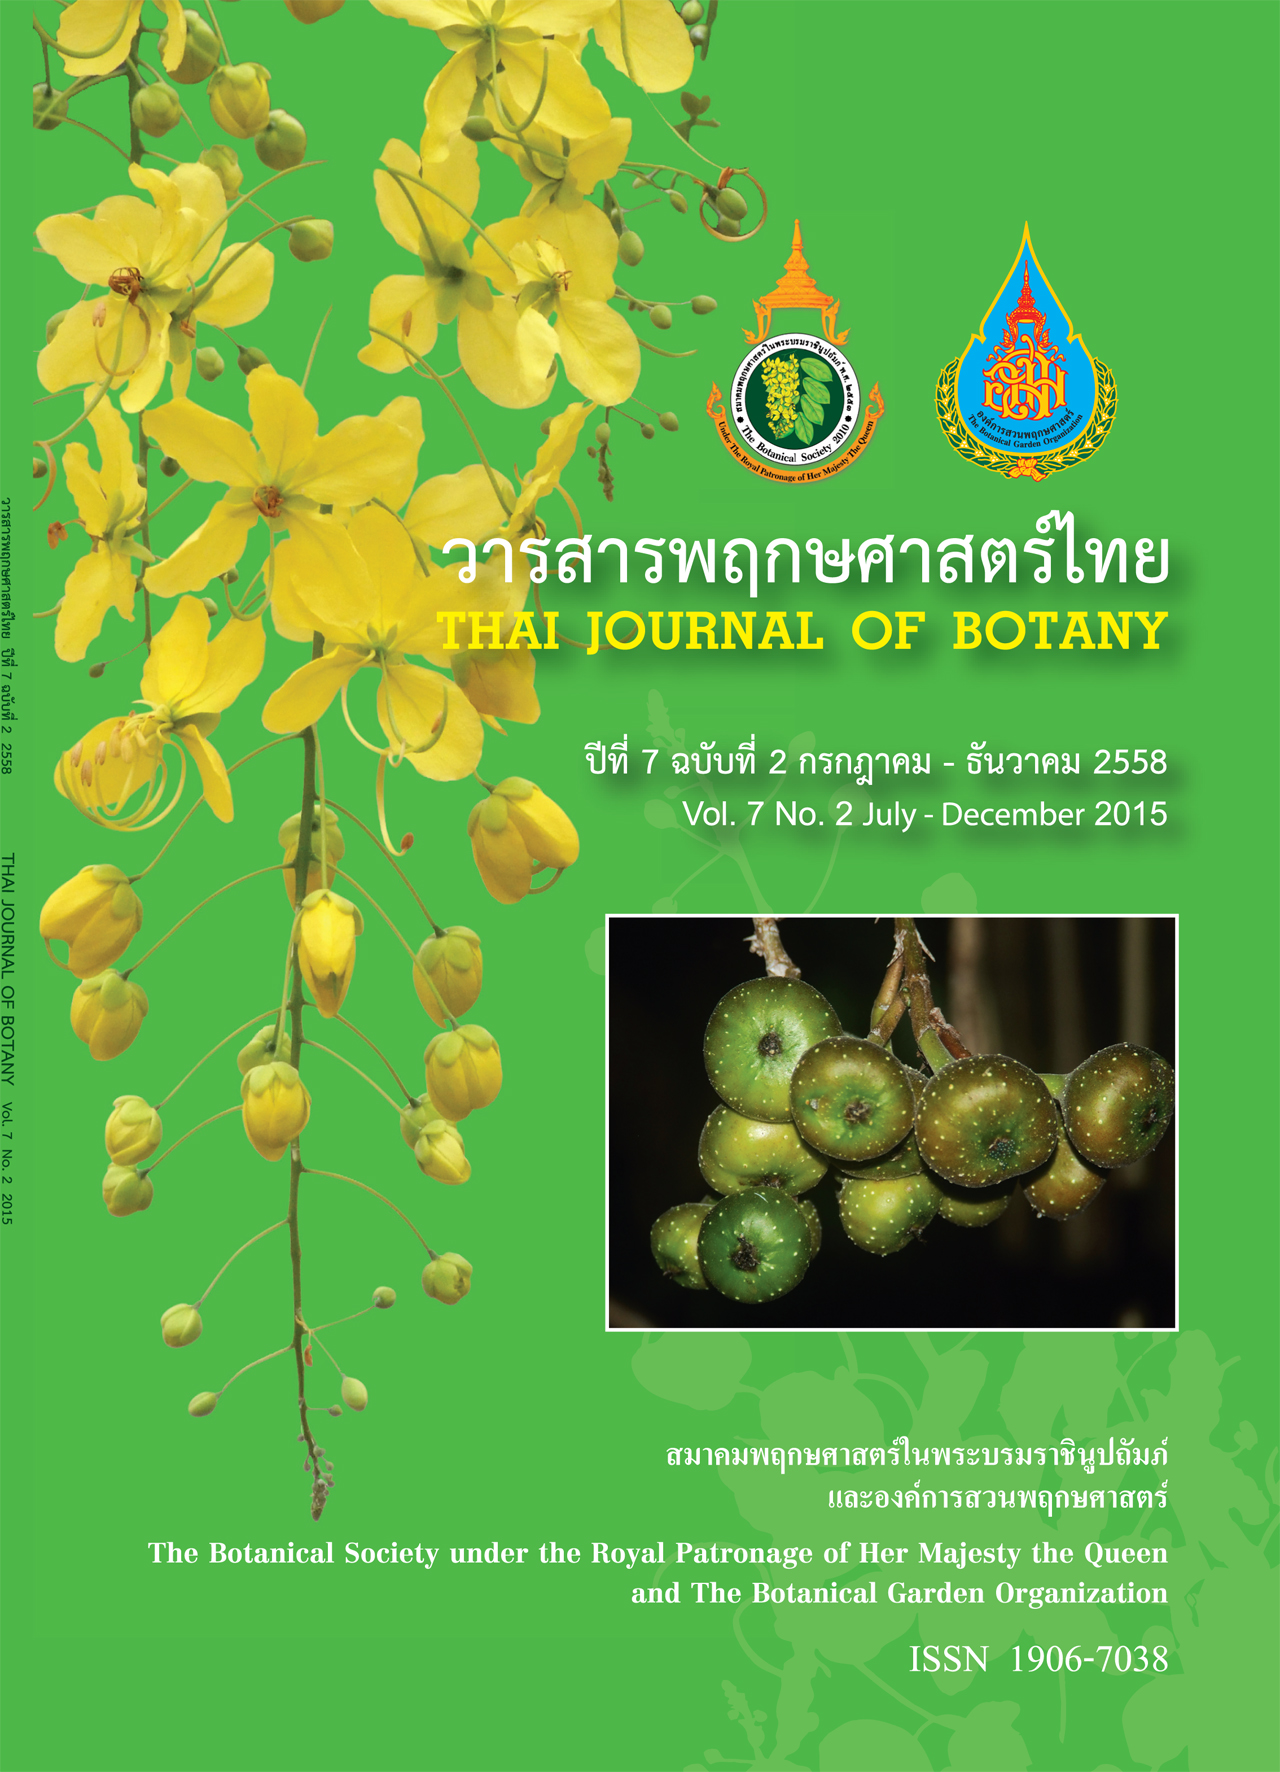 Thai Journal of Botany